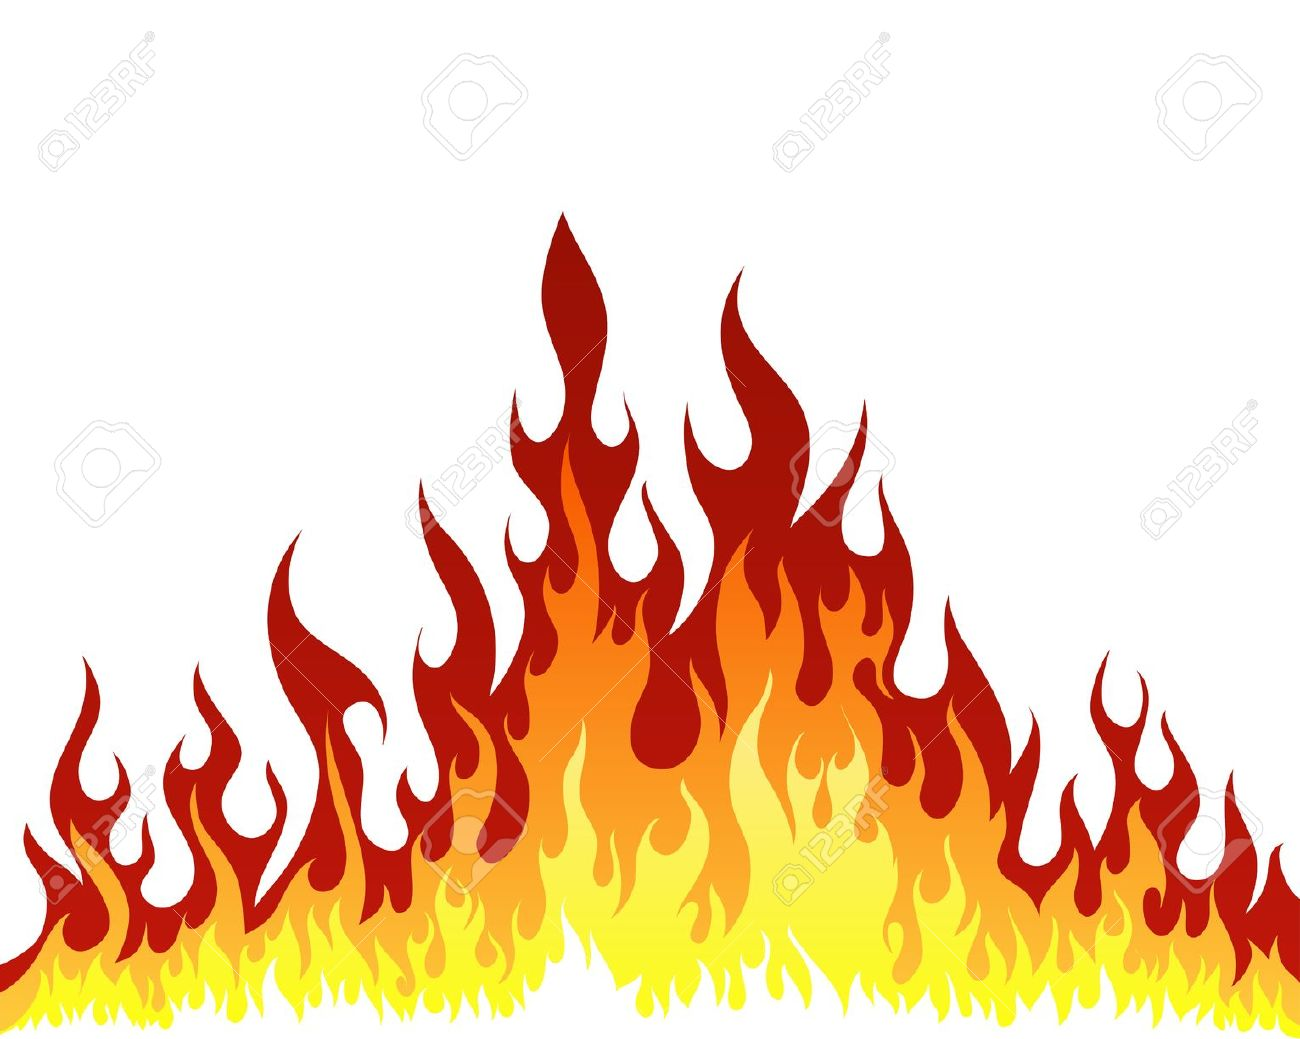 Inferno Fire Vector Background .-Inferno fire vector background .-15